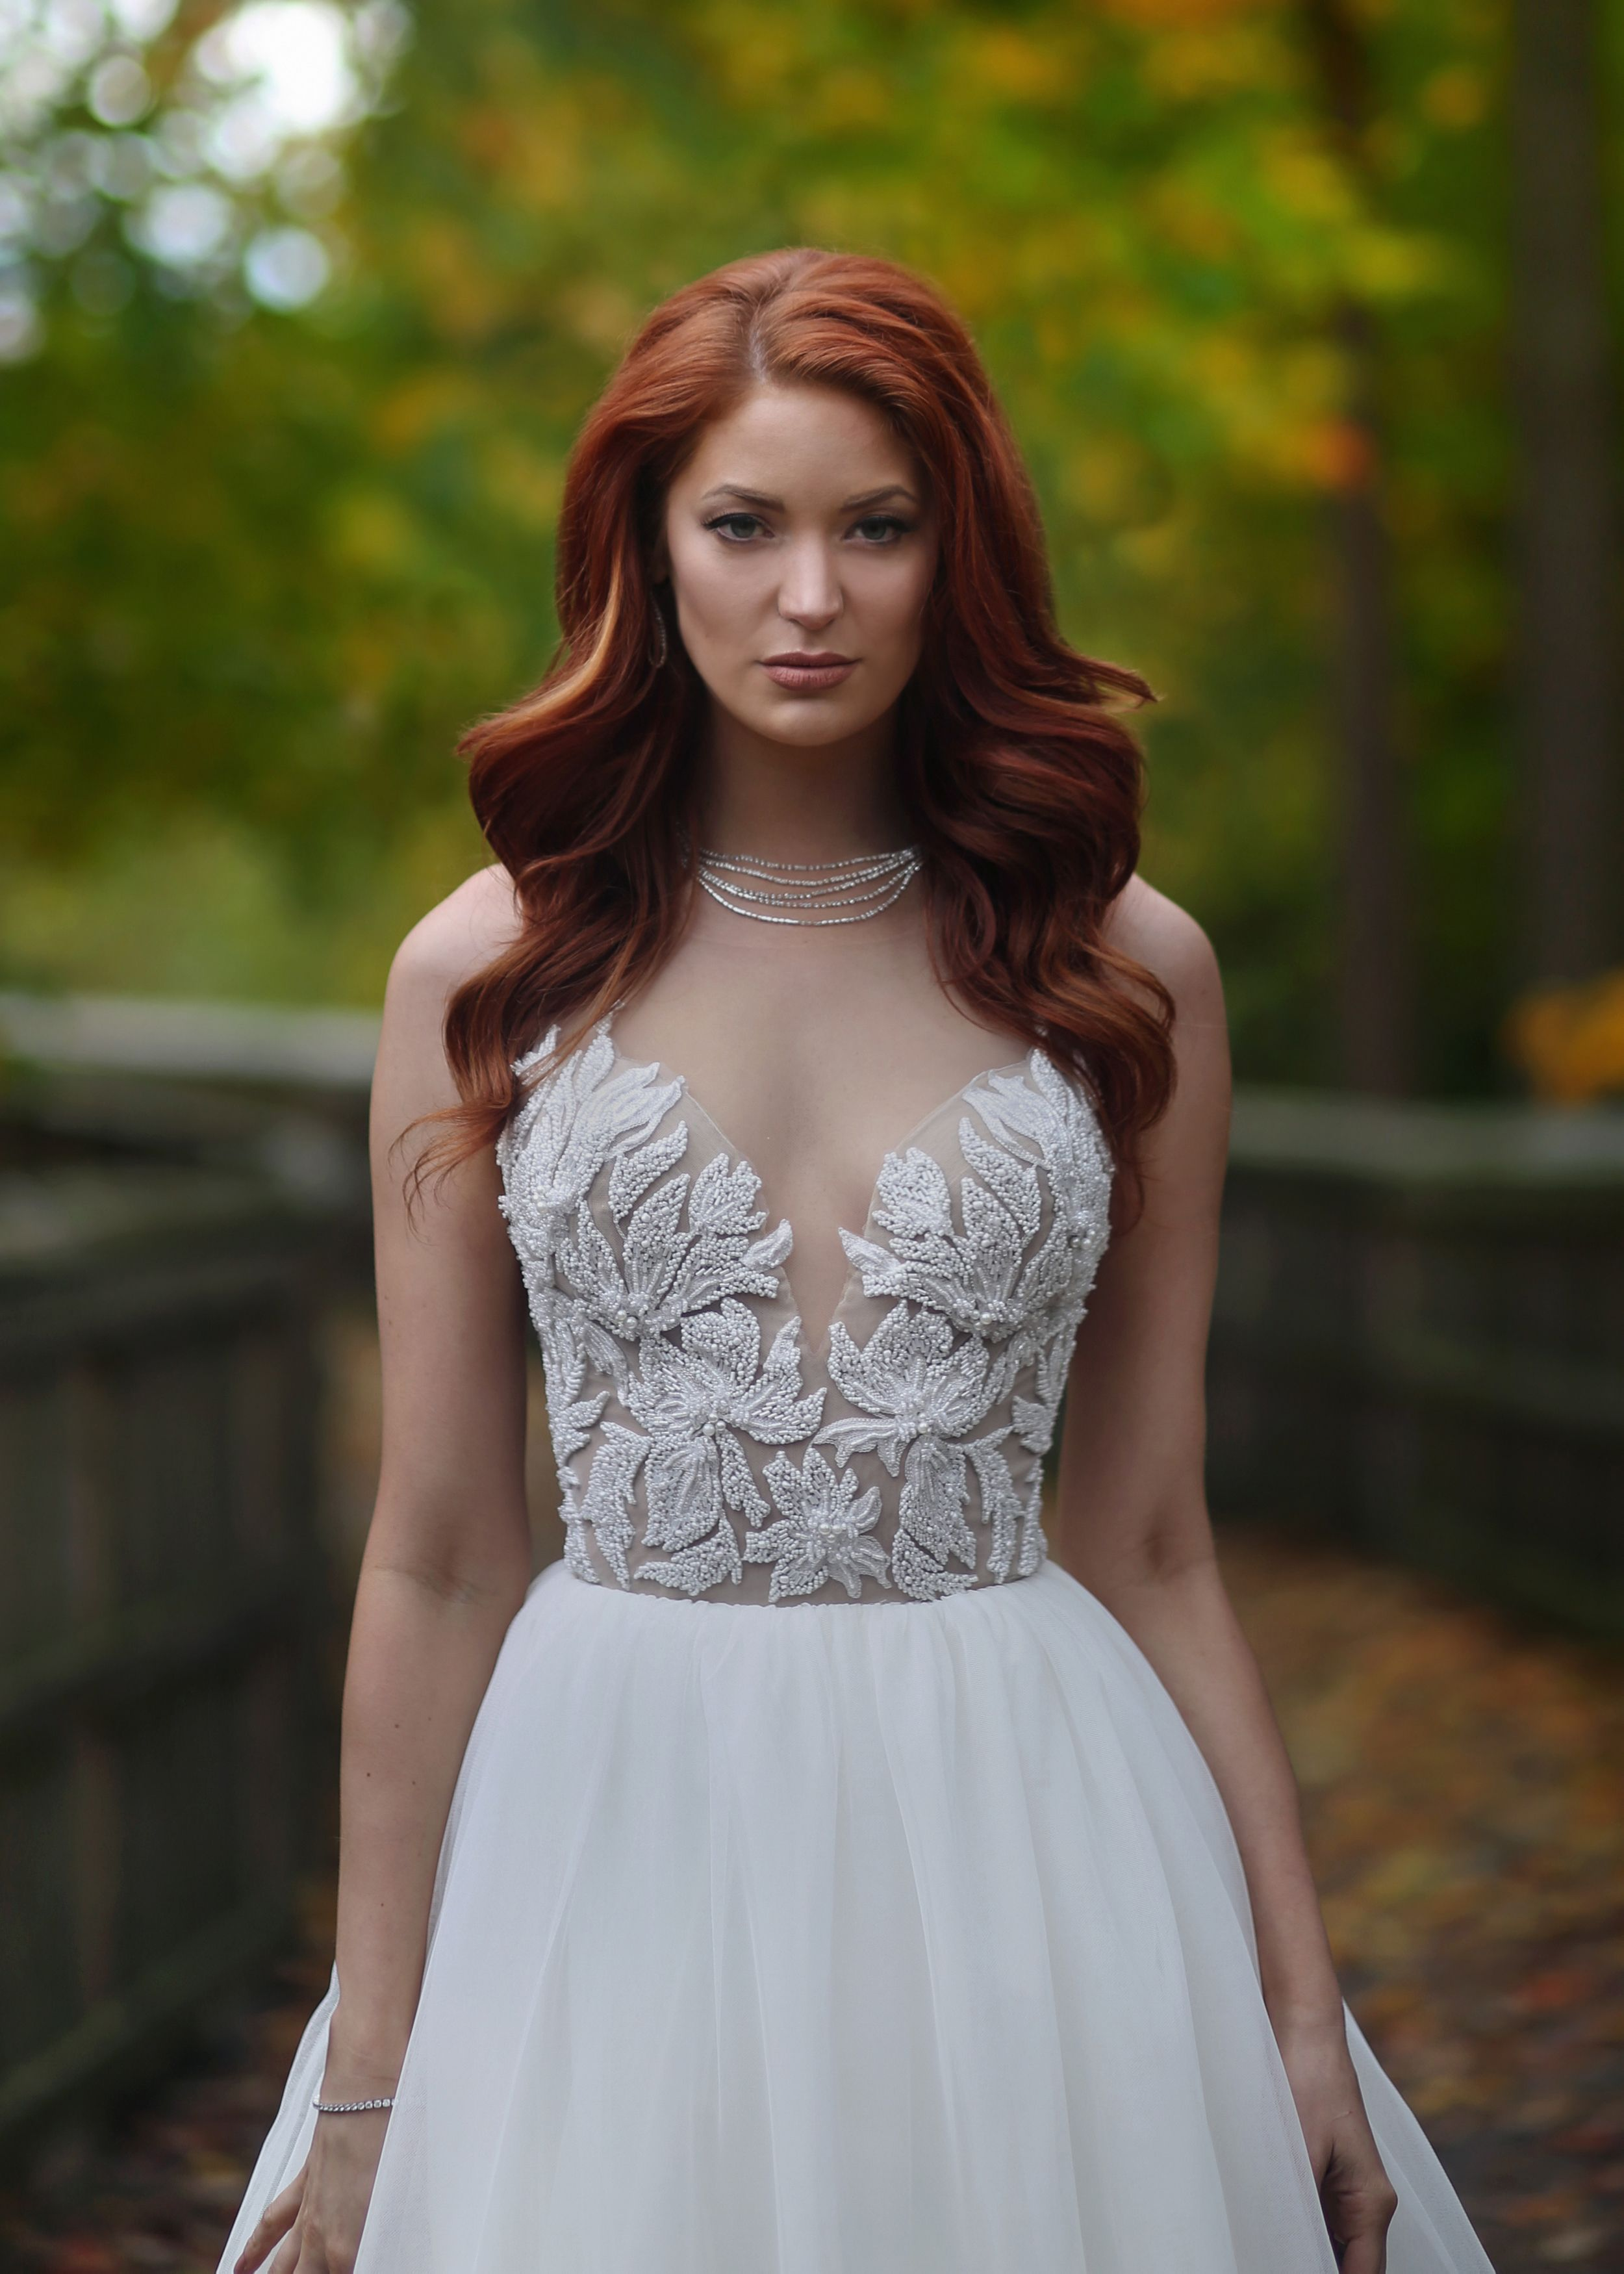 Plunging Neckline Beaded Wedding Dress From Solutions Bridal In Orlando Florida Lace Dresses